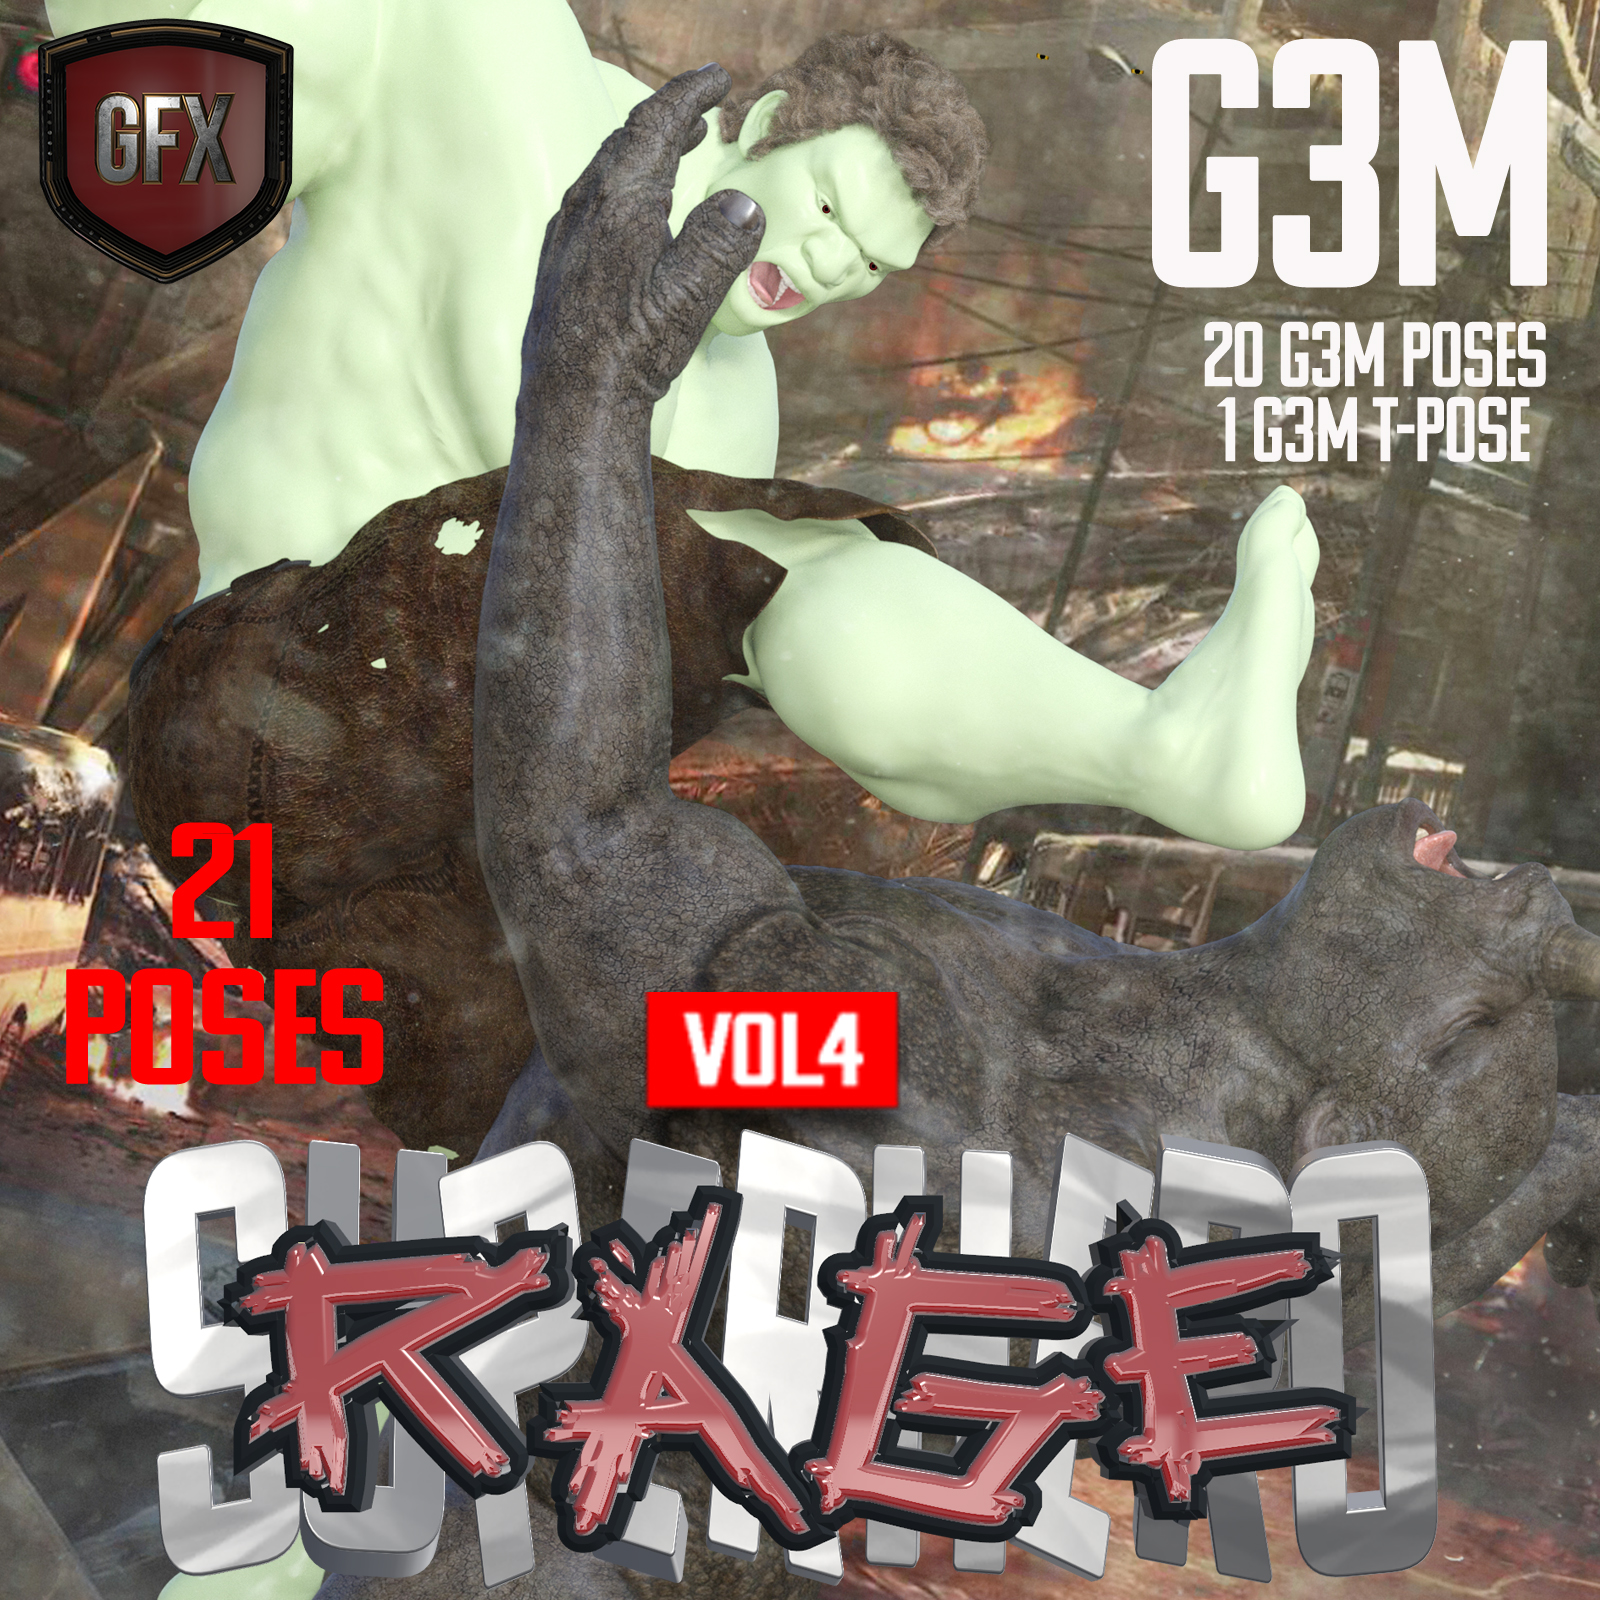 SuperHero Rage for G3M Volume 4 by GriffinFX